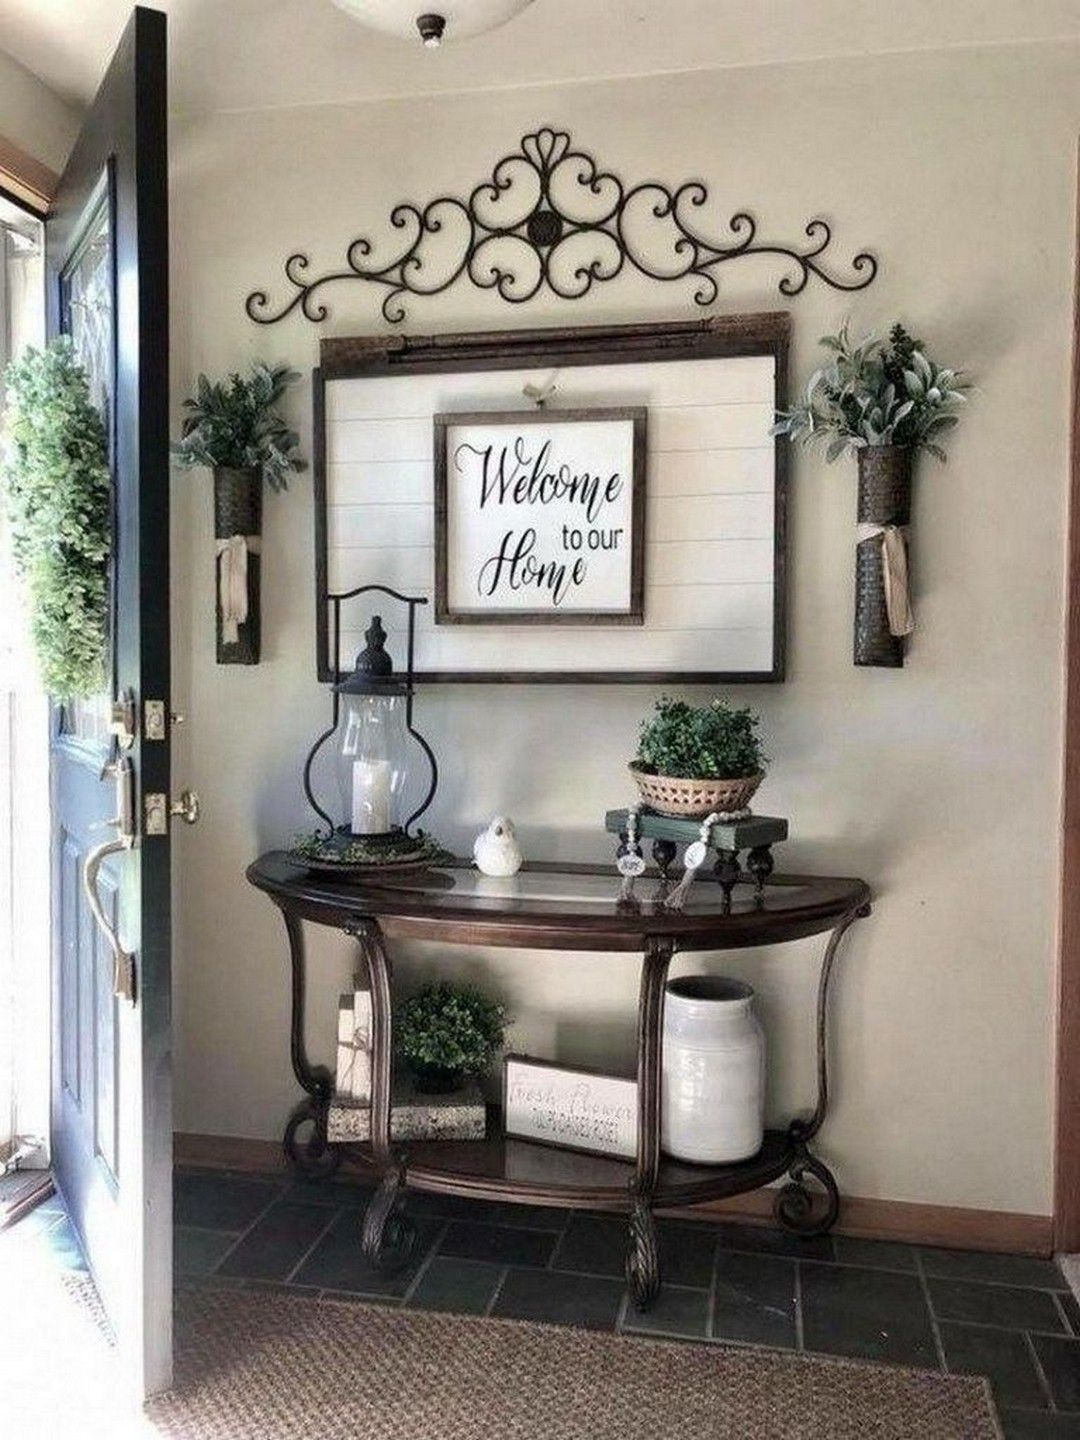 Gorgeous Diy Farmhouse Furniture And Decor Ideas For A Rustic Country Home Diy Crafts Rustic Apartment Decor Farm House Living Room Entry Table Decor